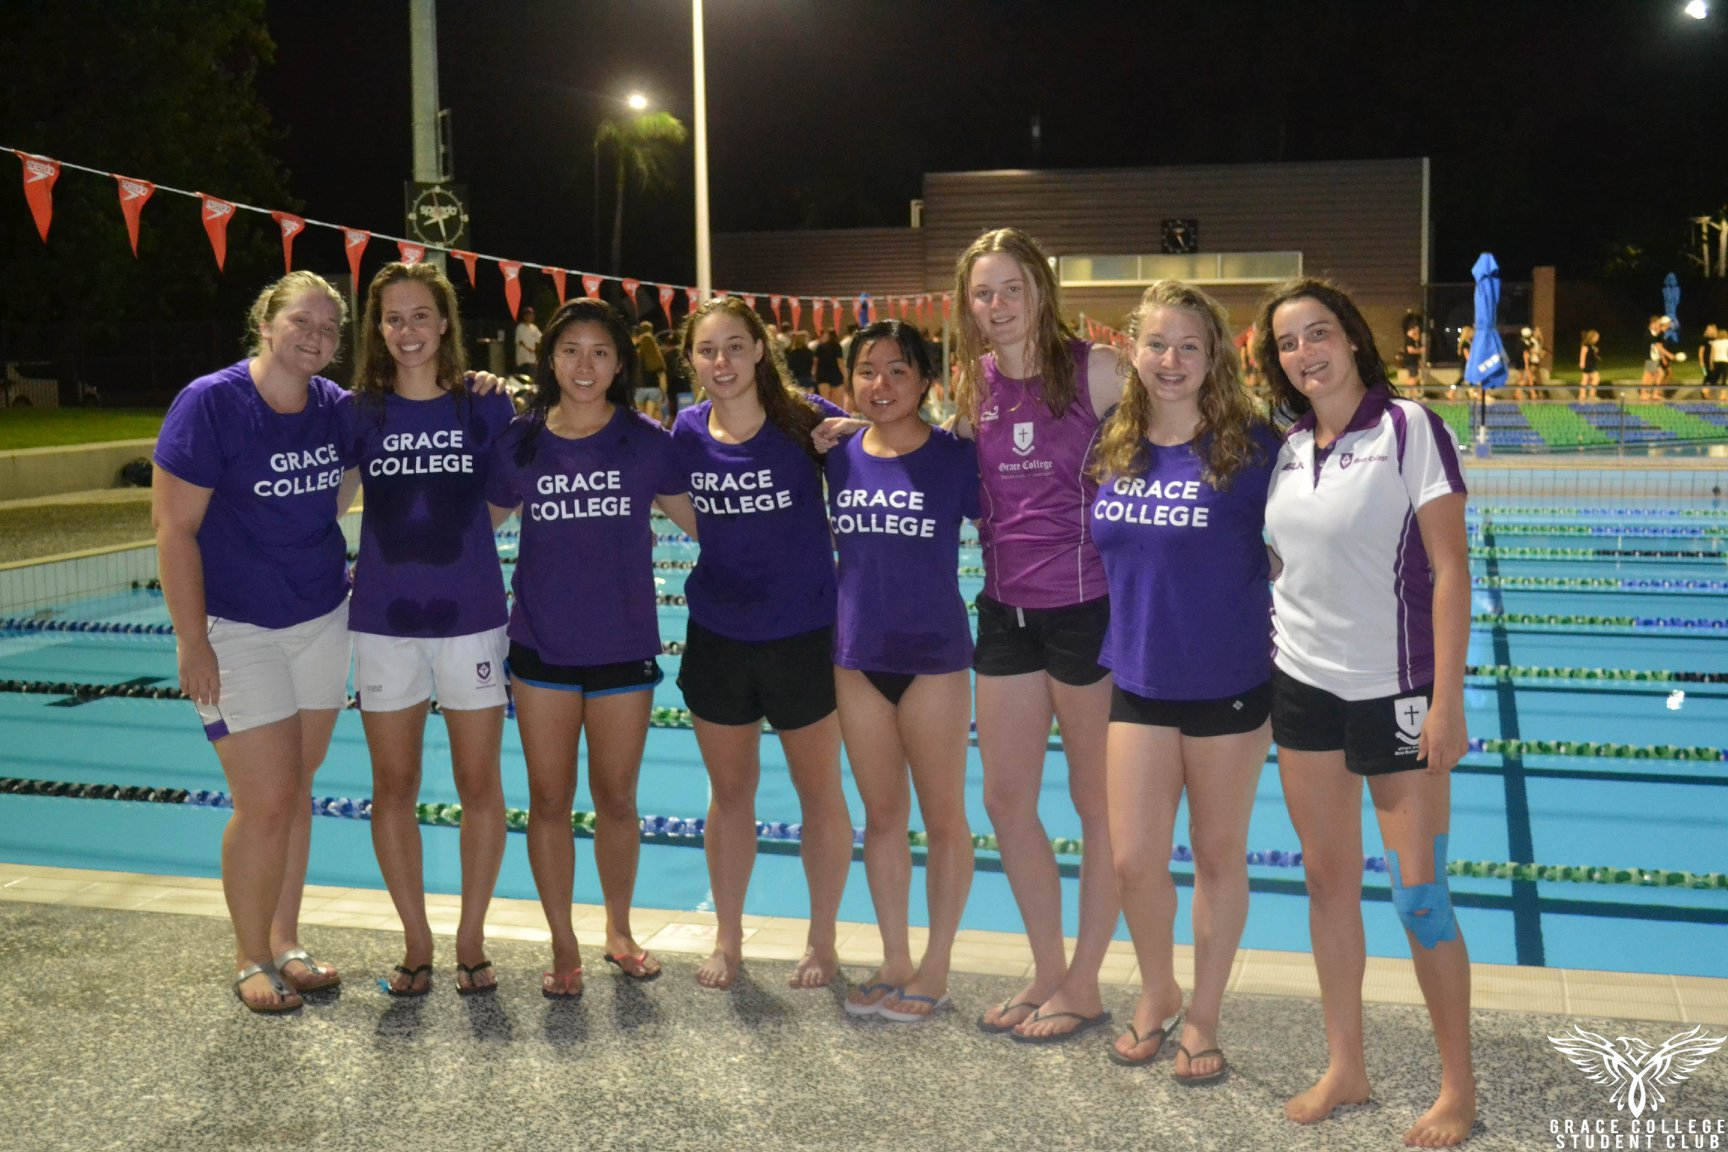 Grace College supporters at swimming carnival